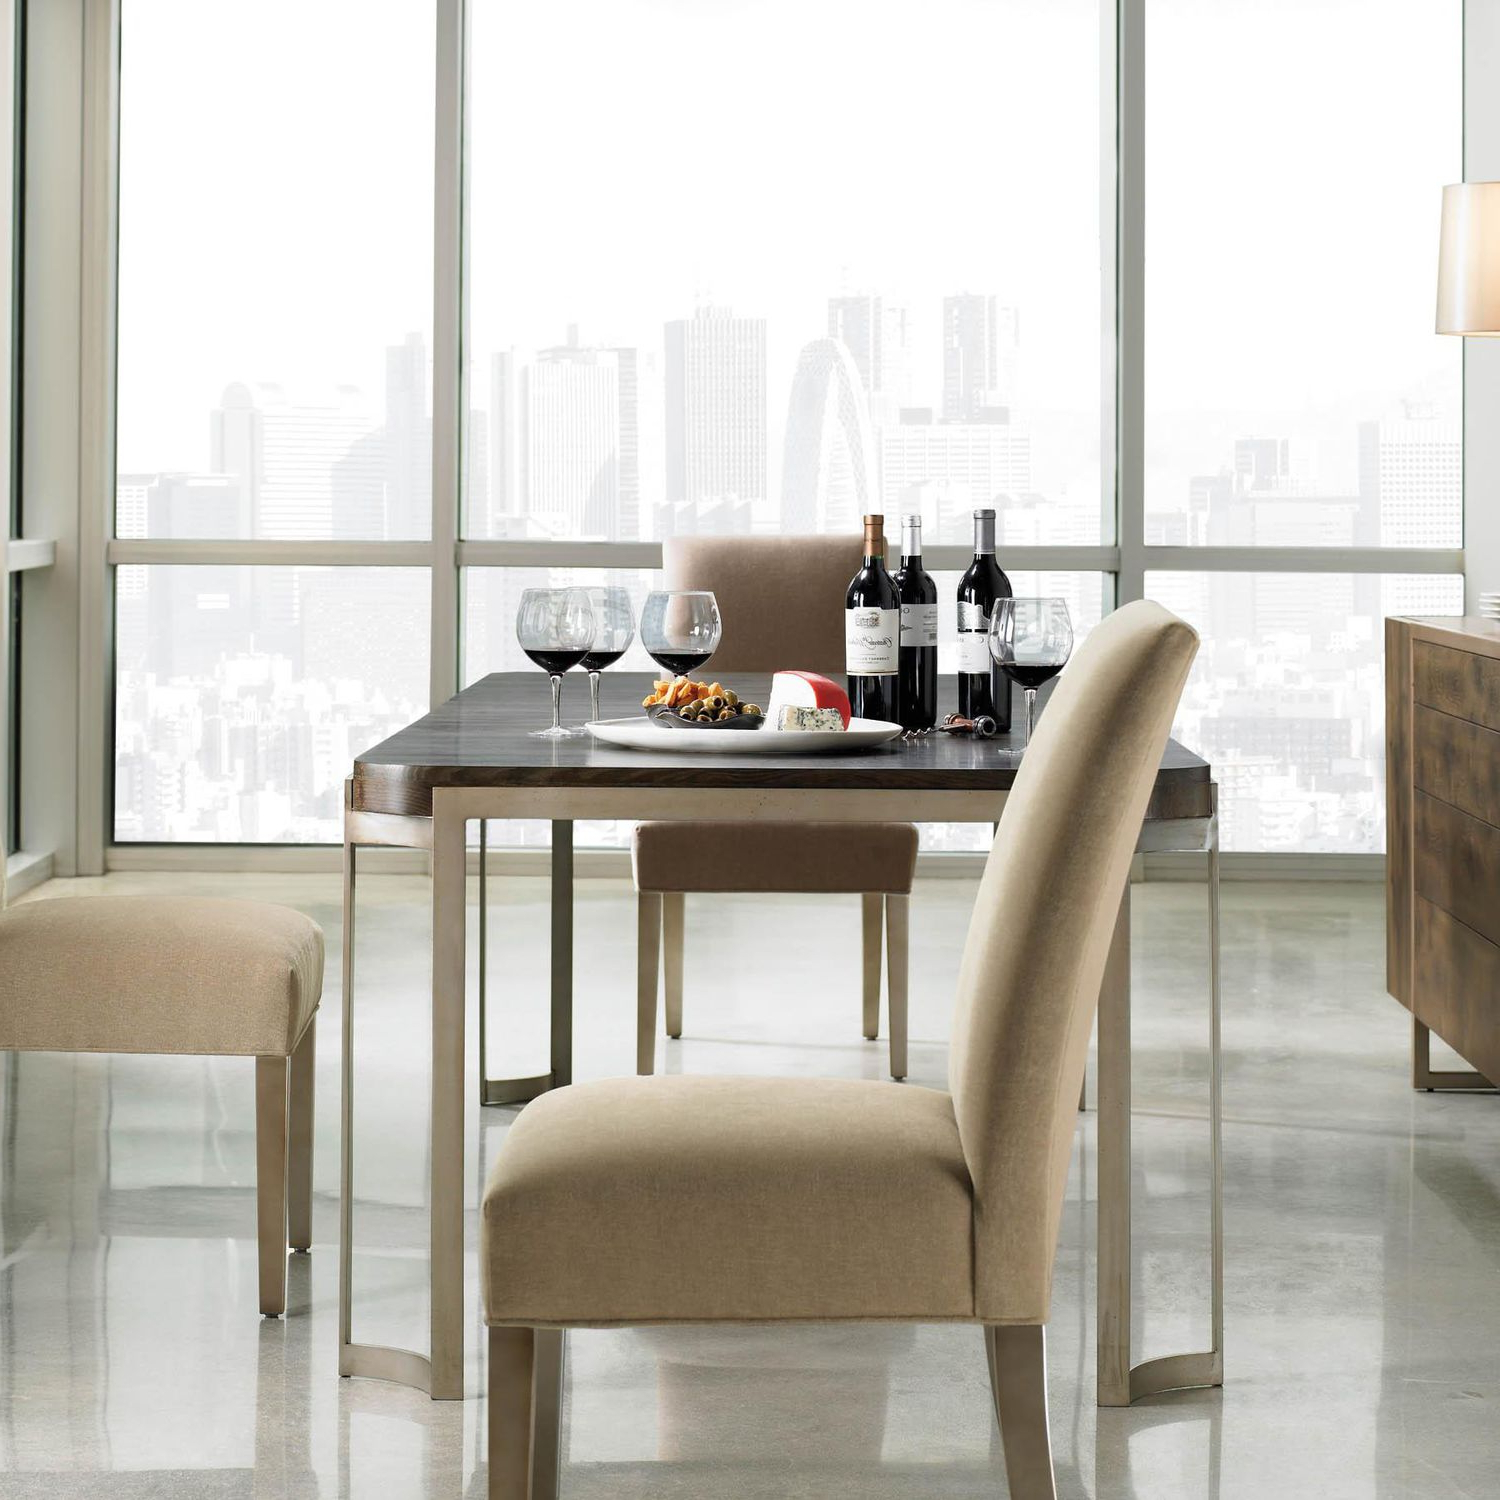 Fumed Oak Dining Tables In Popular Contemporary Dining Table / Oak / Lacquered Metal Base / Rectangular Modern Artisans Caracole (View 19 of 25)